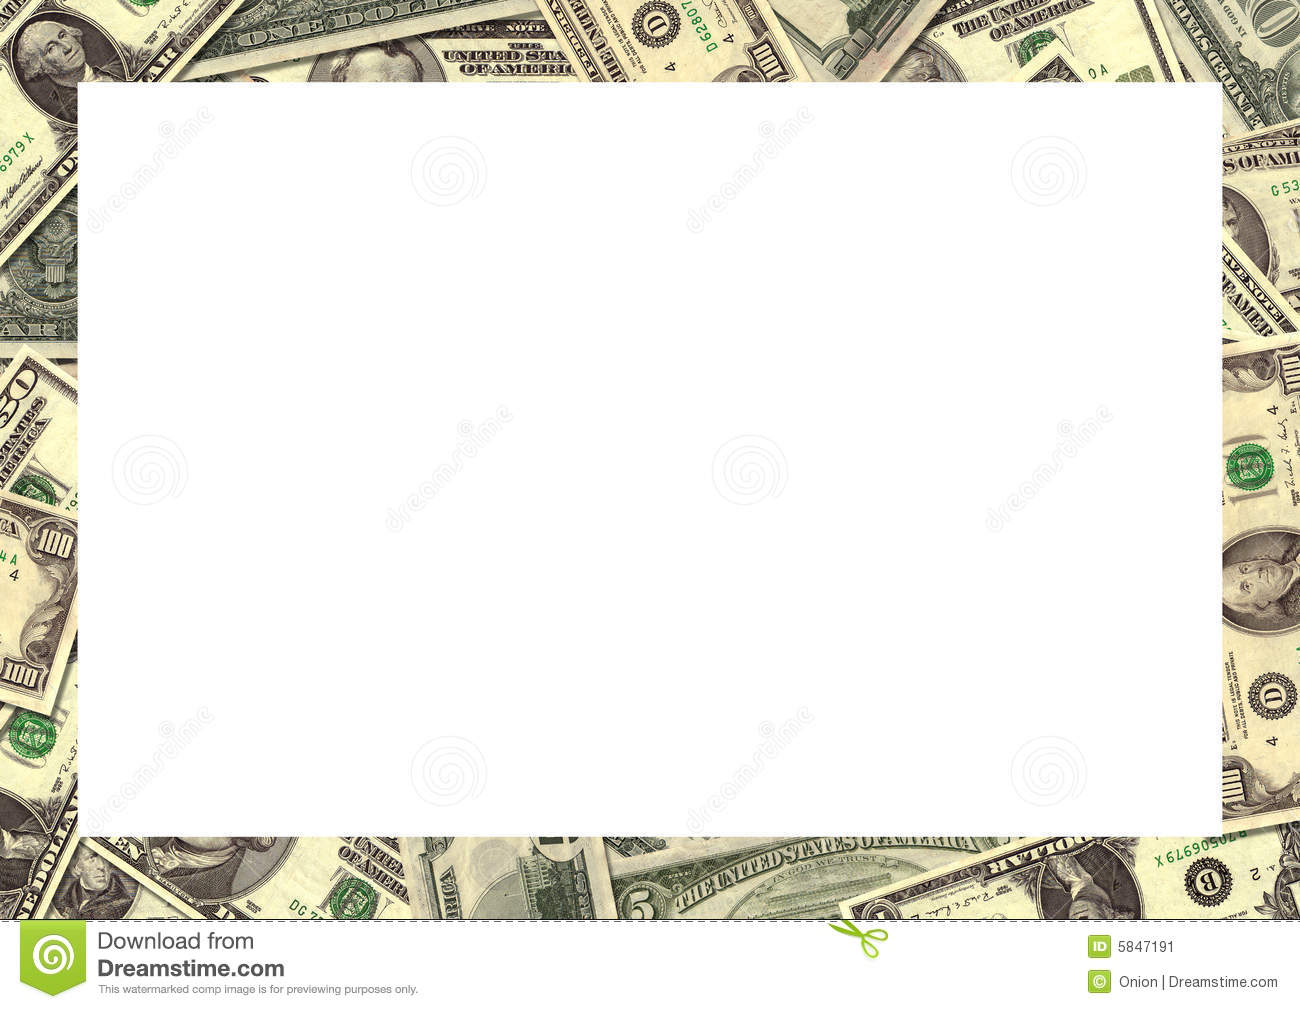 American dollars randomly placed to create a background border.